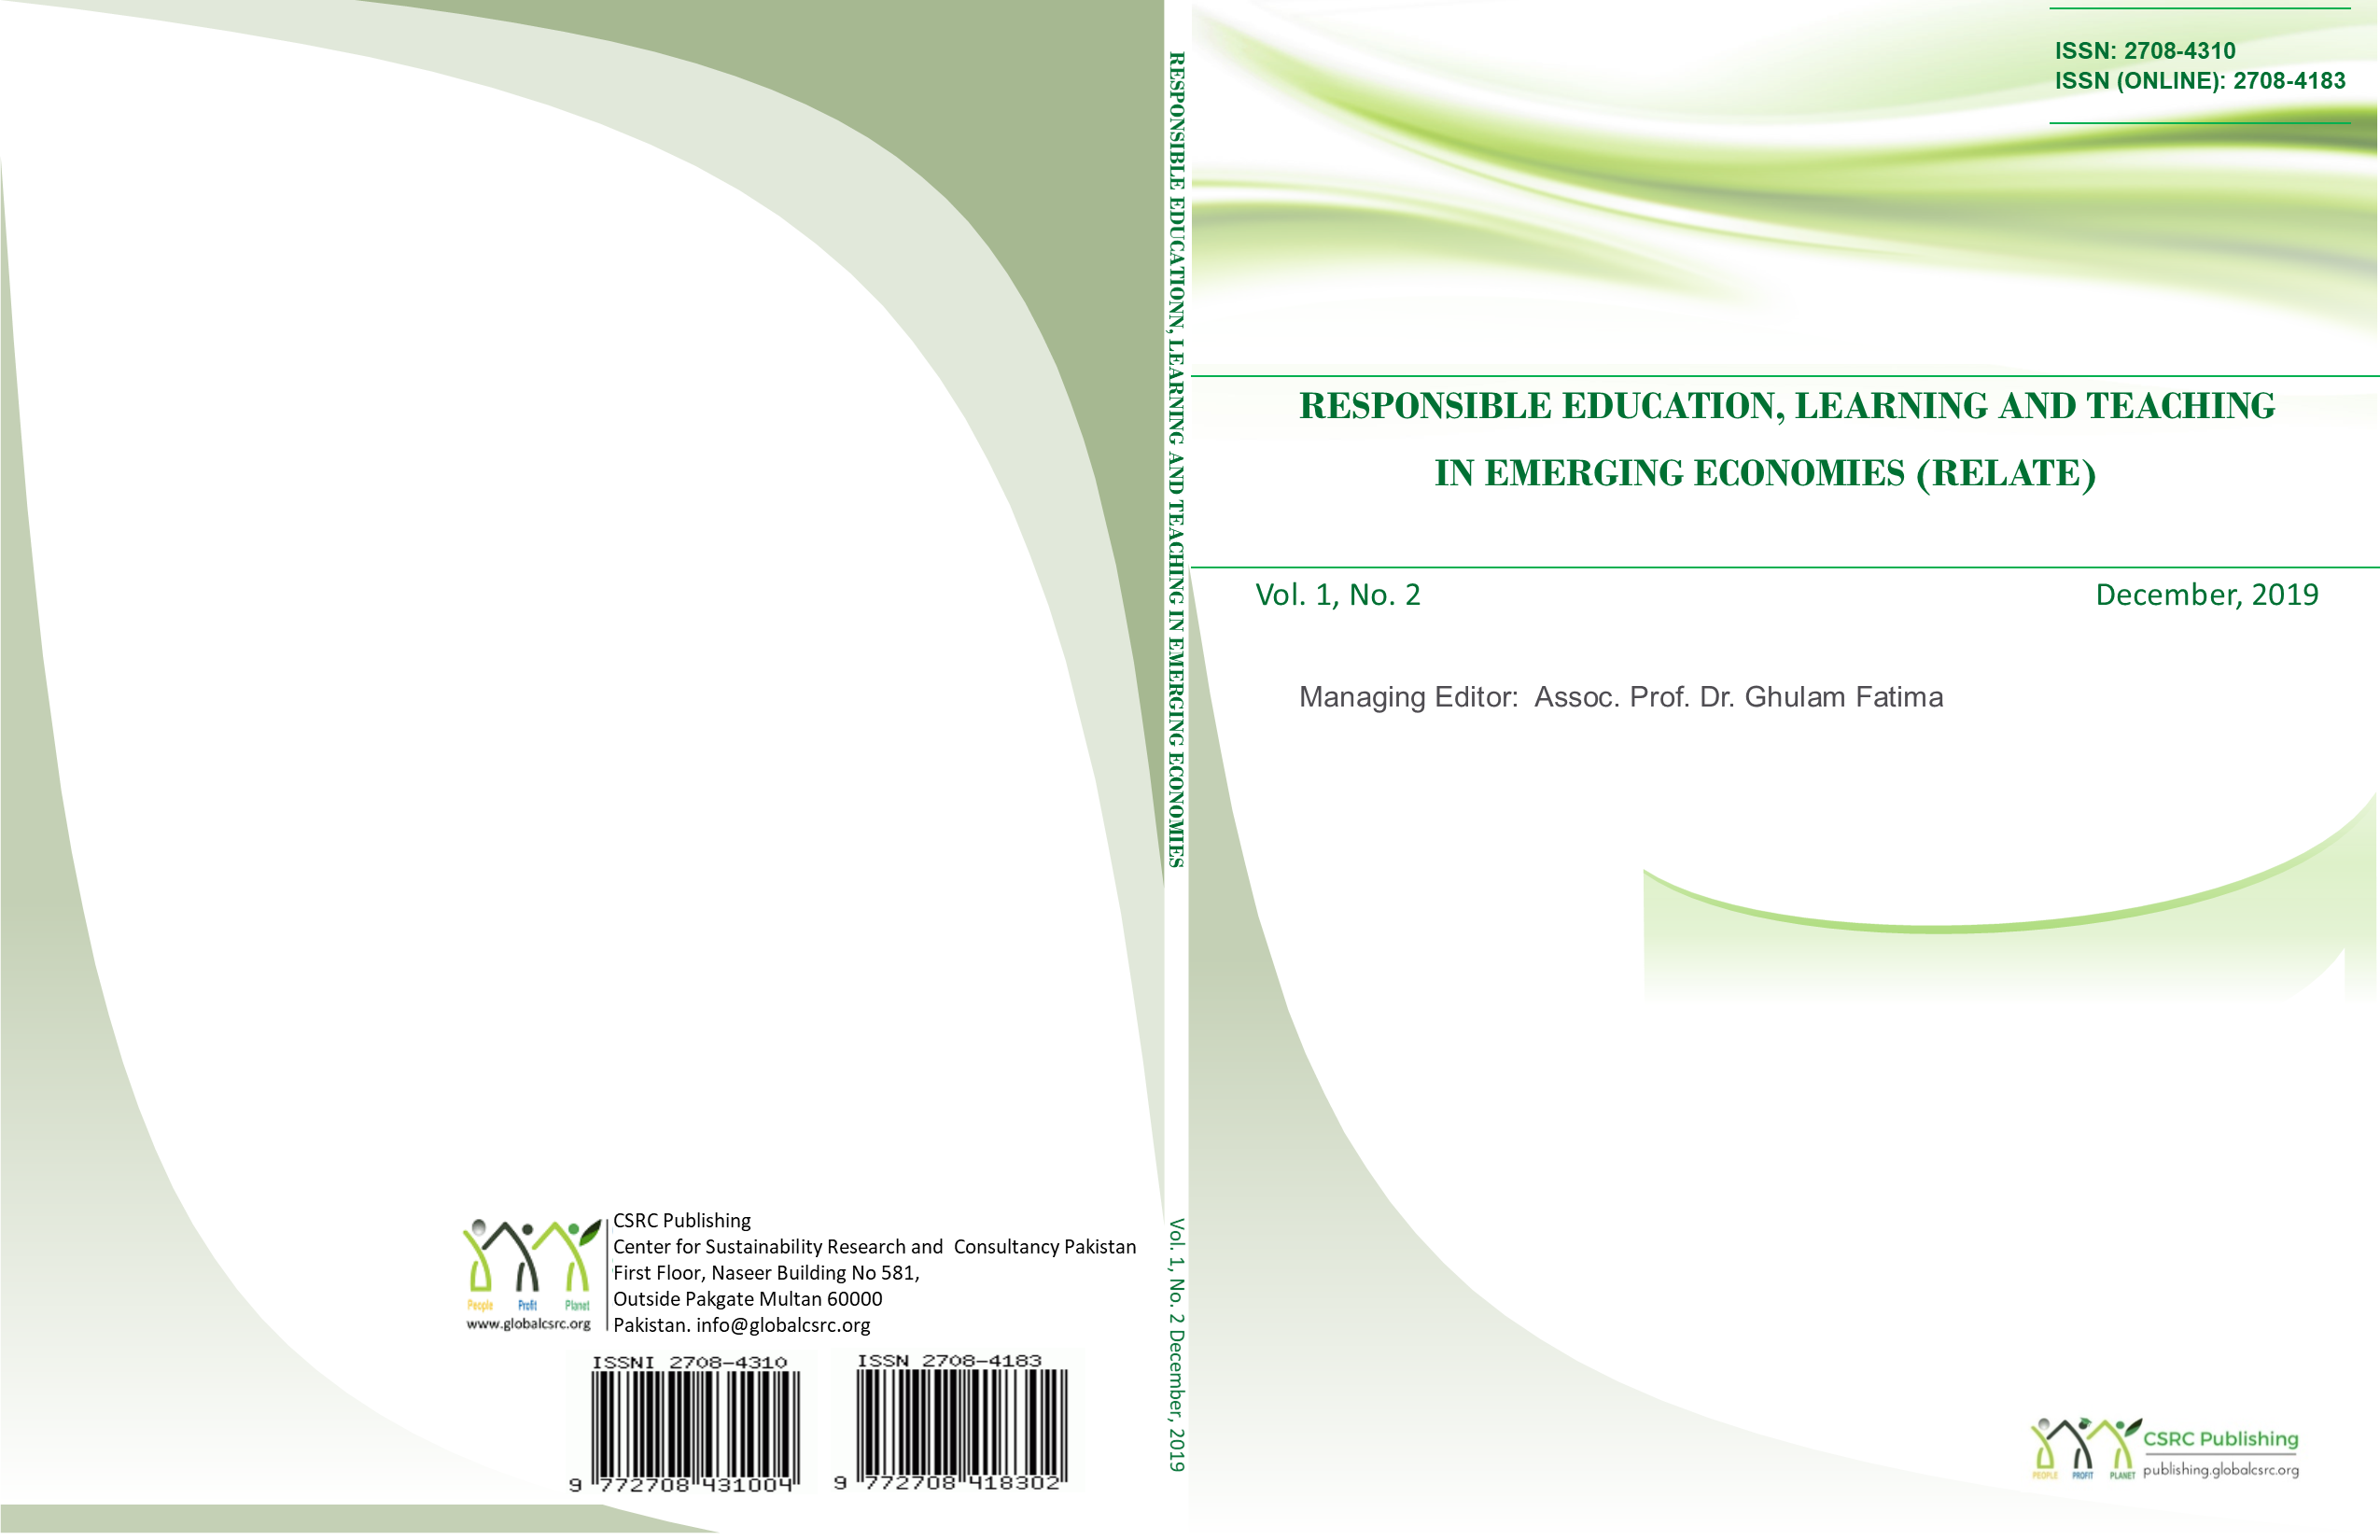 Responsible Education, Learning and Teaching in Emerging Economies (RELATE)